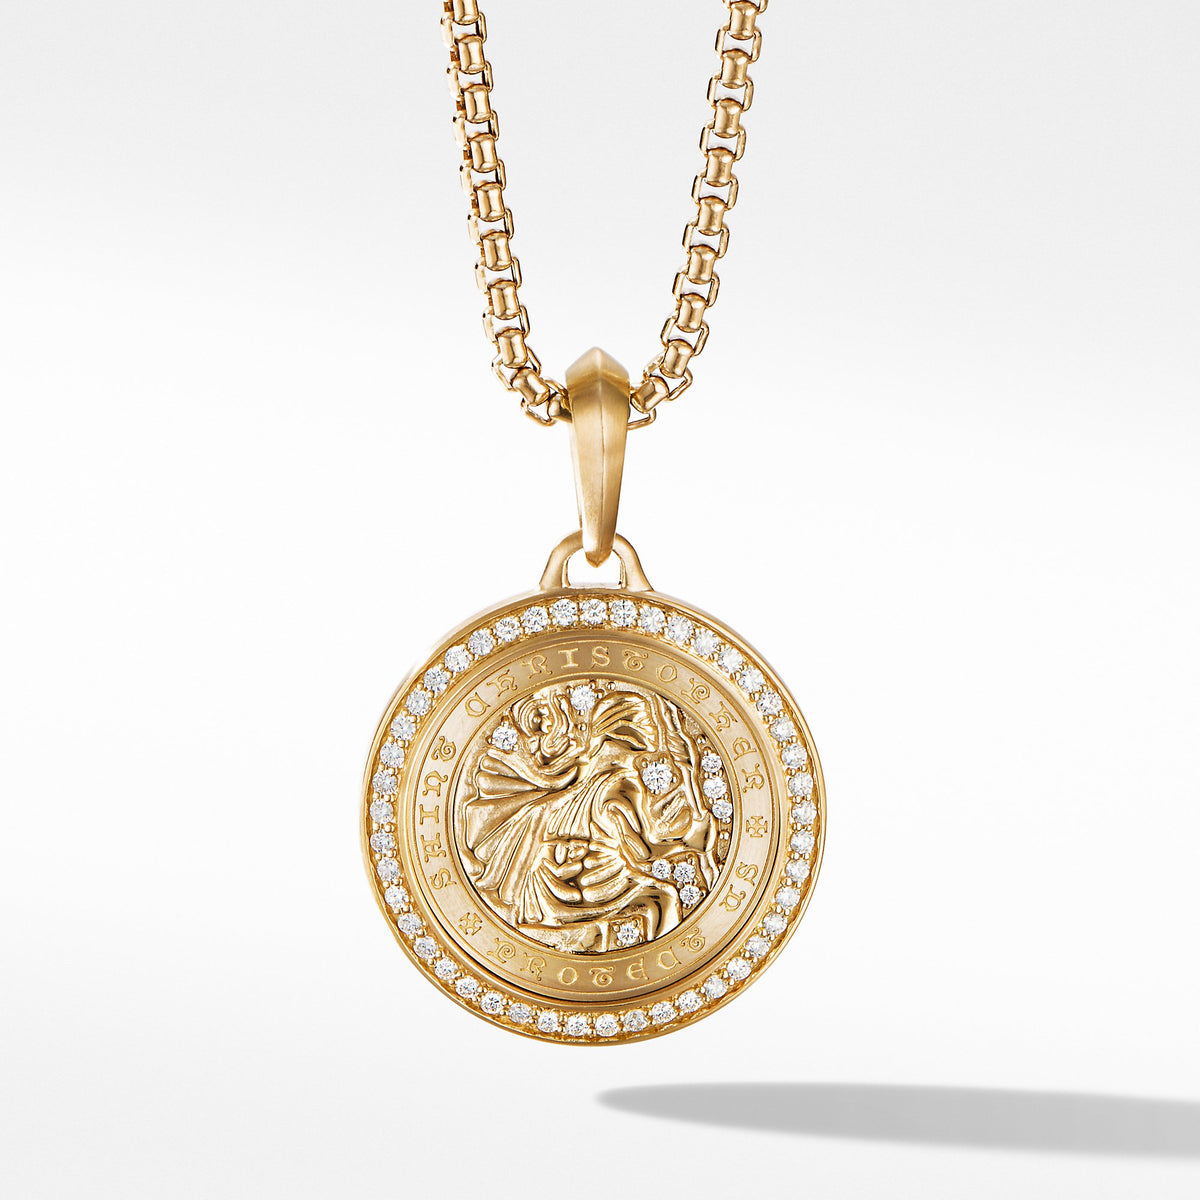 St. Christopher Amulet in 18K Yellow Gold with Pave Diamonds